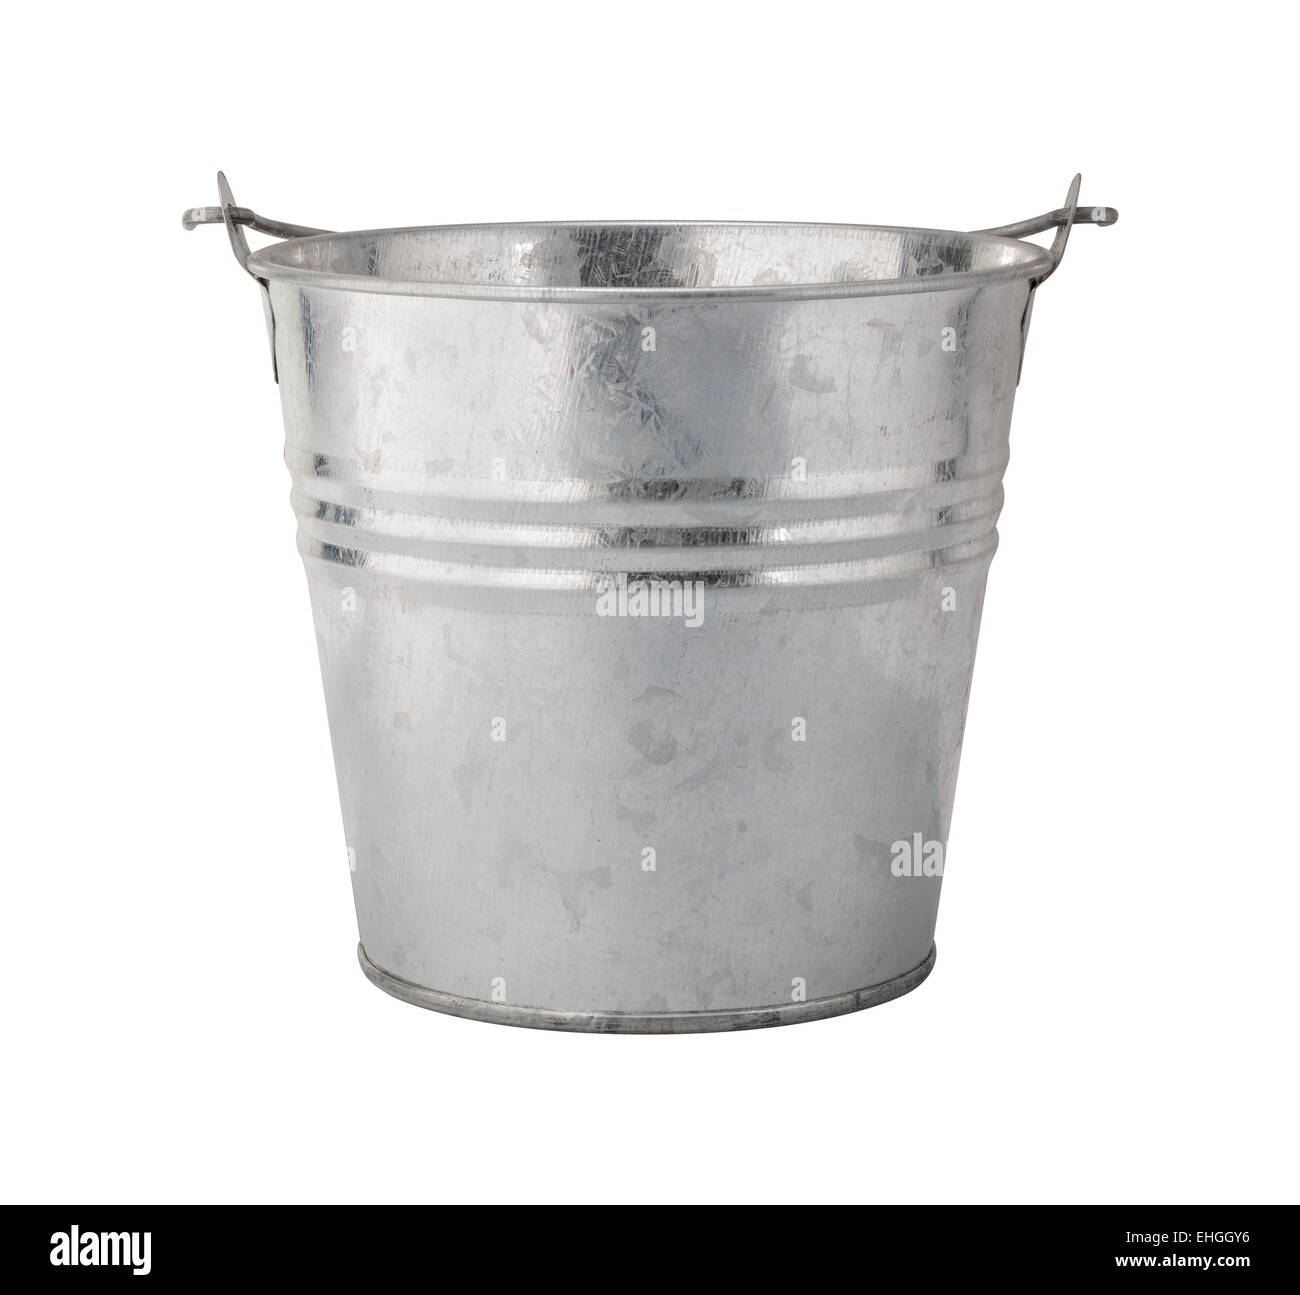 Metal Pail isolated on white - Stock Image